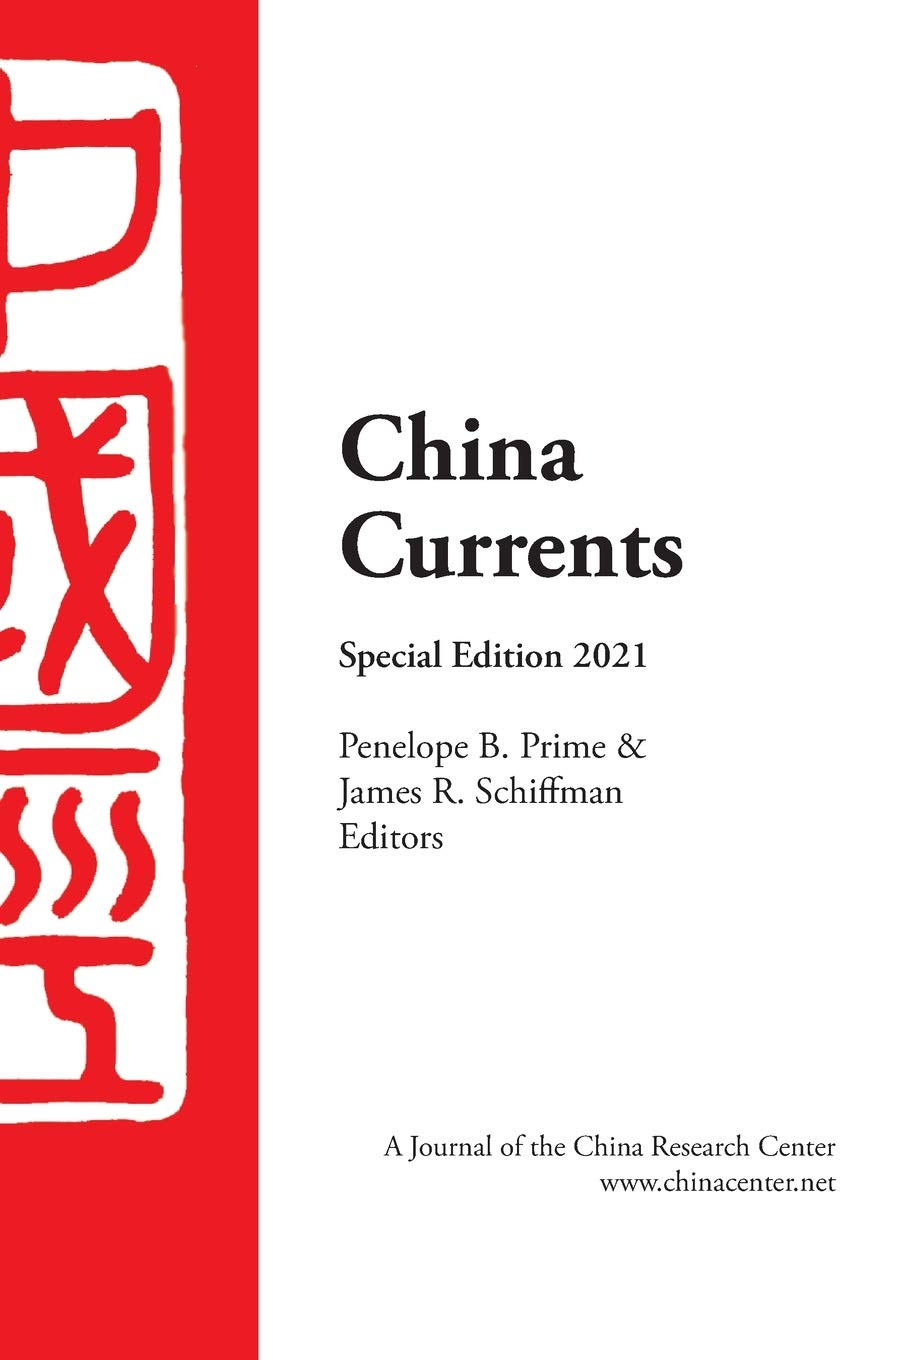 China Currents 2021